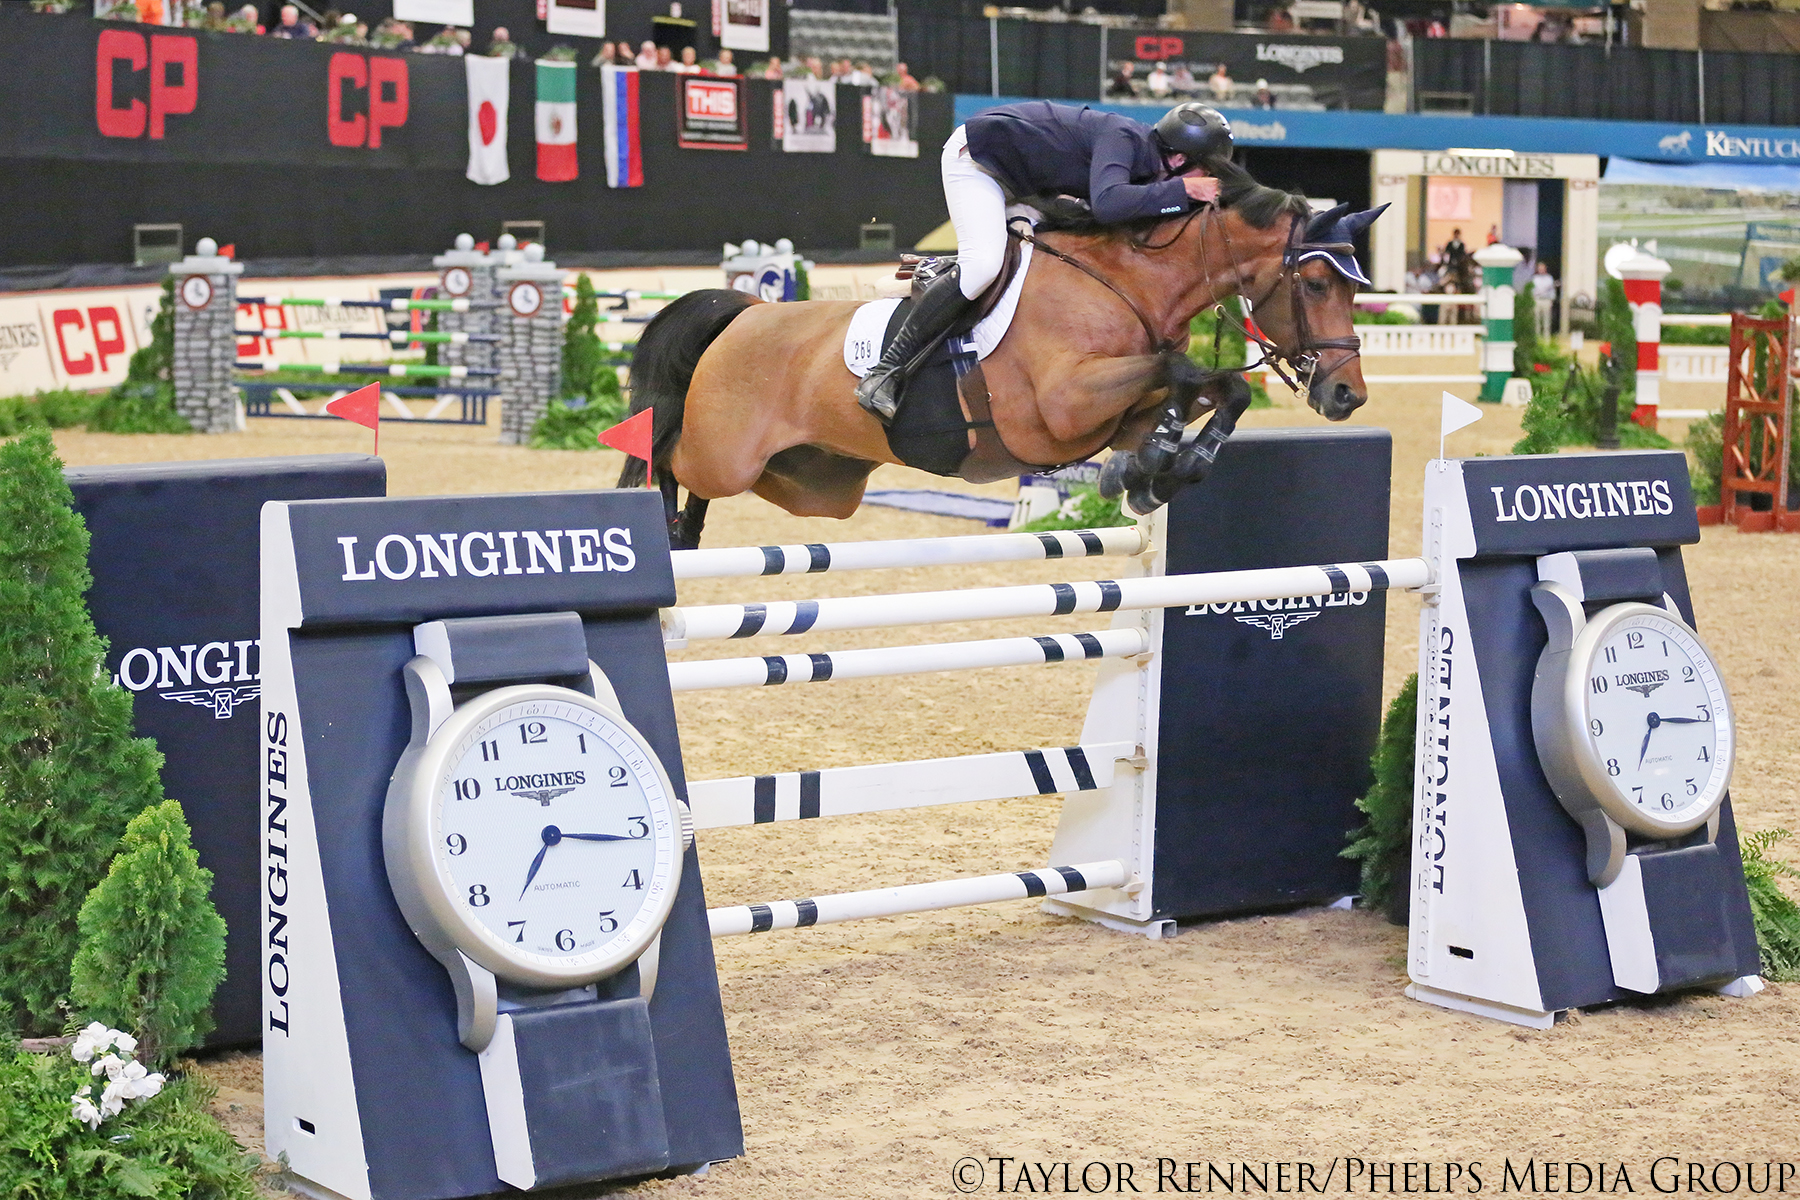 Jack Hardin Towell and New York. ©Taylor Renner/Phelps Media